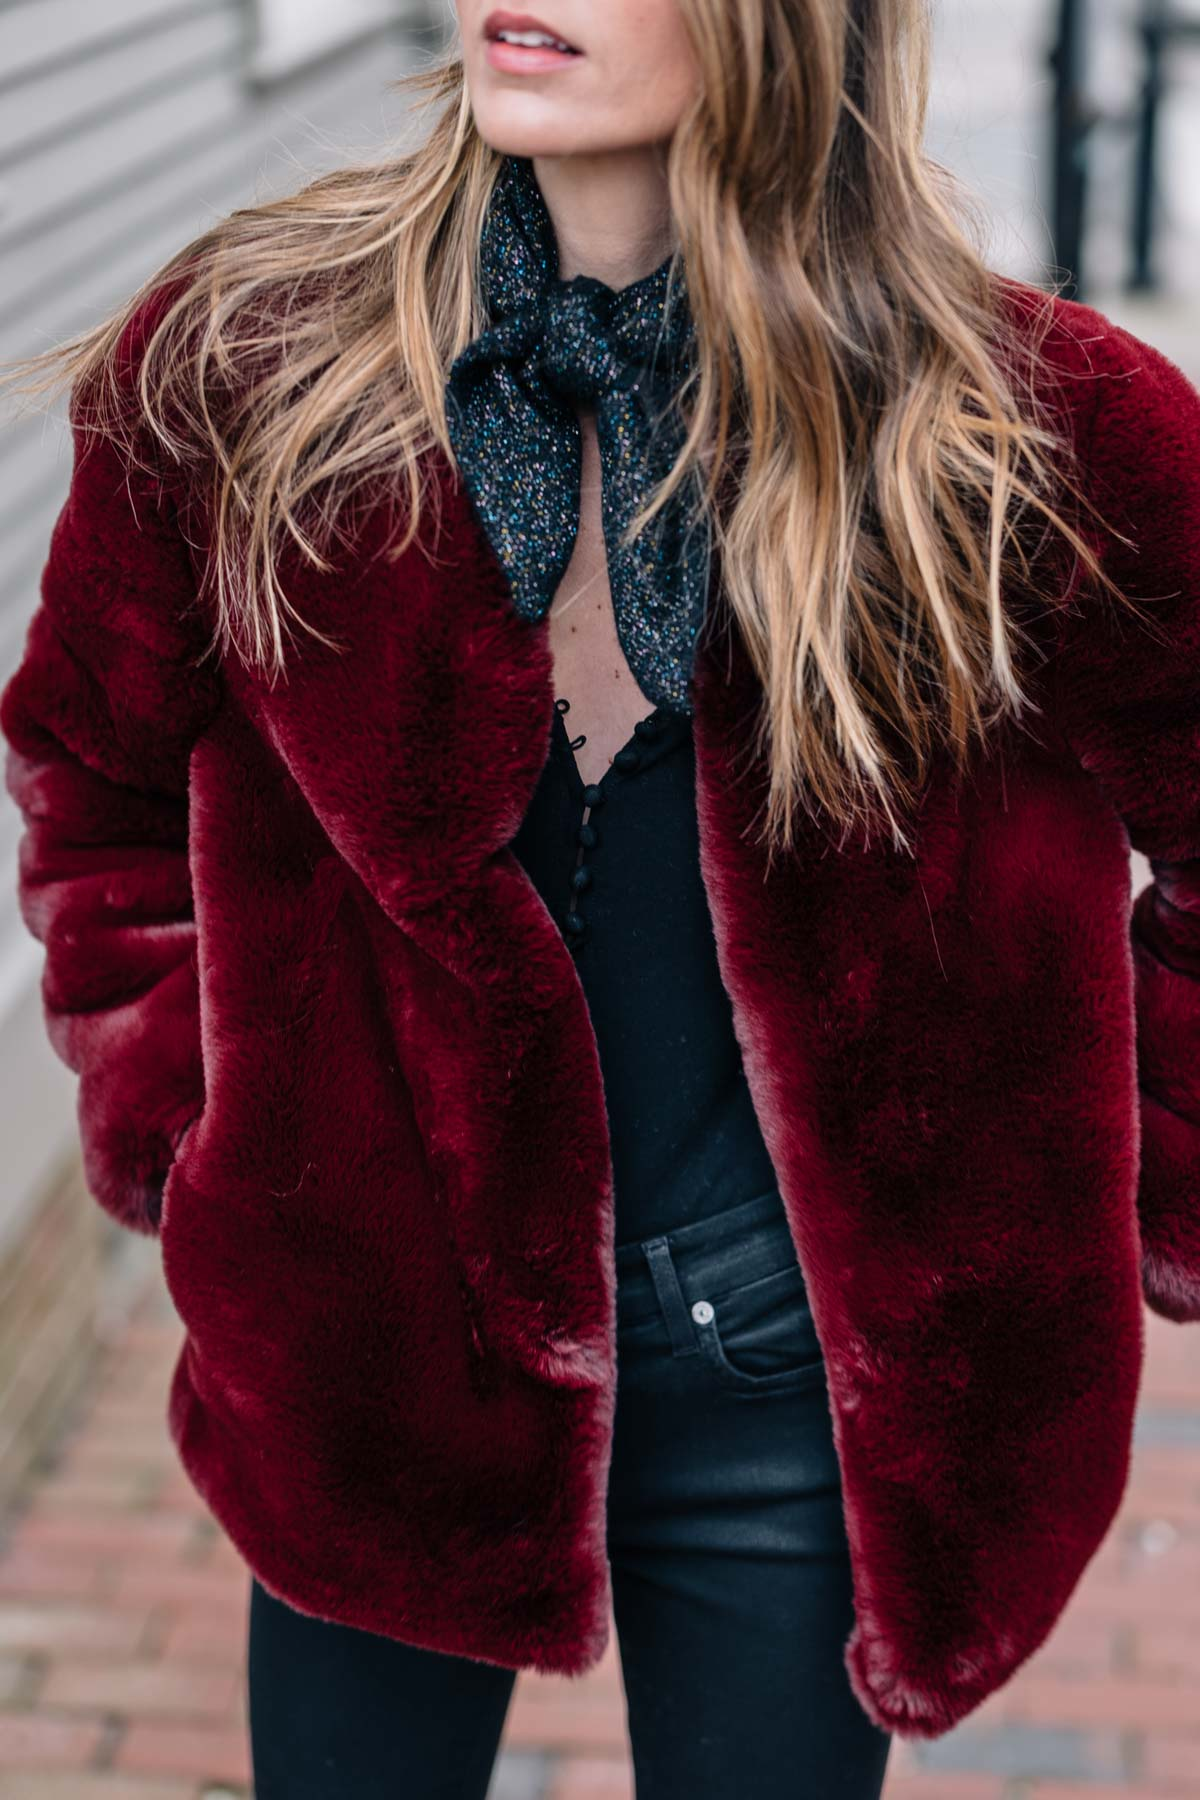 Jess Ann Kirby shares her holiday style this season in a burgundy Moon River faux fur jacket and Warren sparkle cashmere scarf